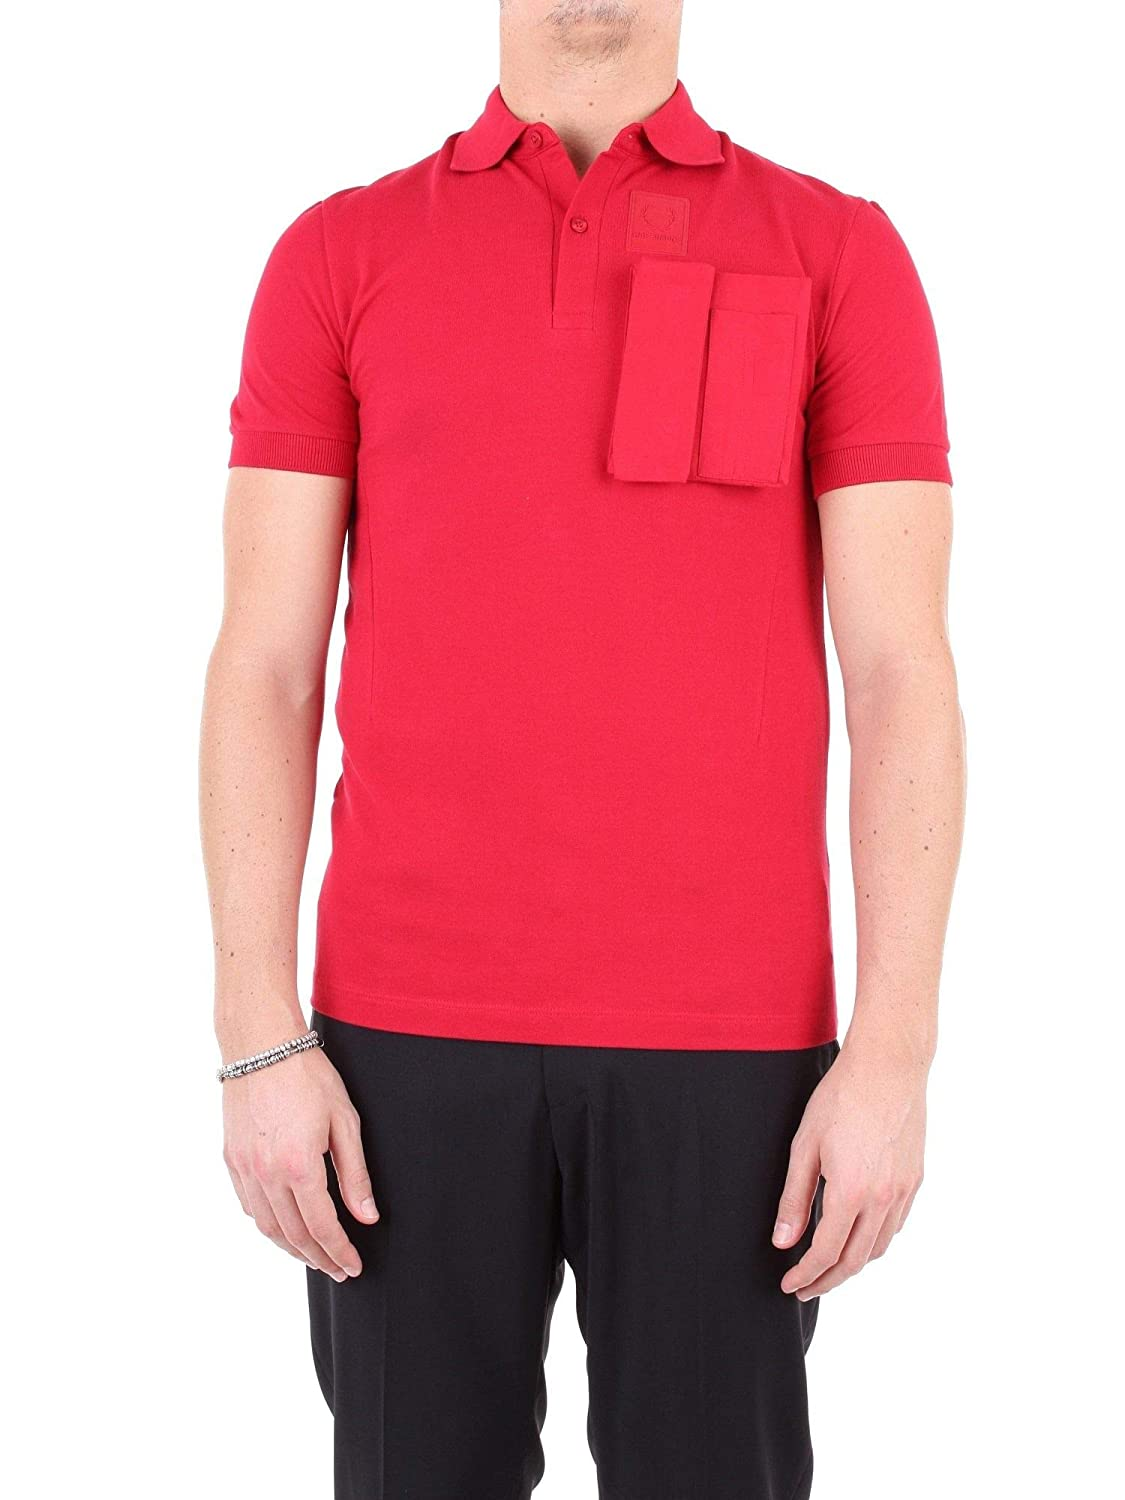 Fred Perry Luxury Fashion Hombre M5131401 Rojo Polo | Temporada ...